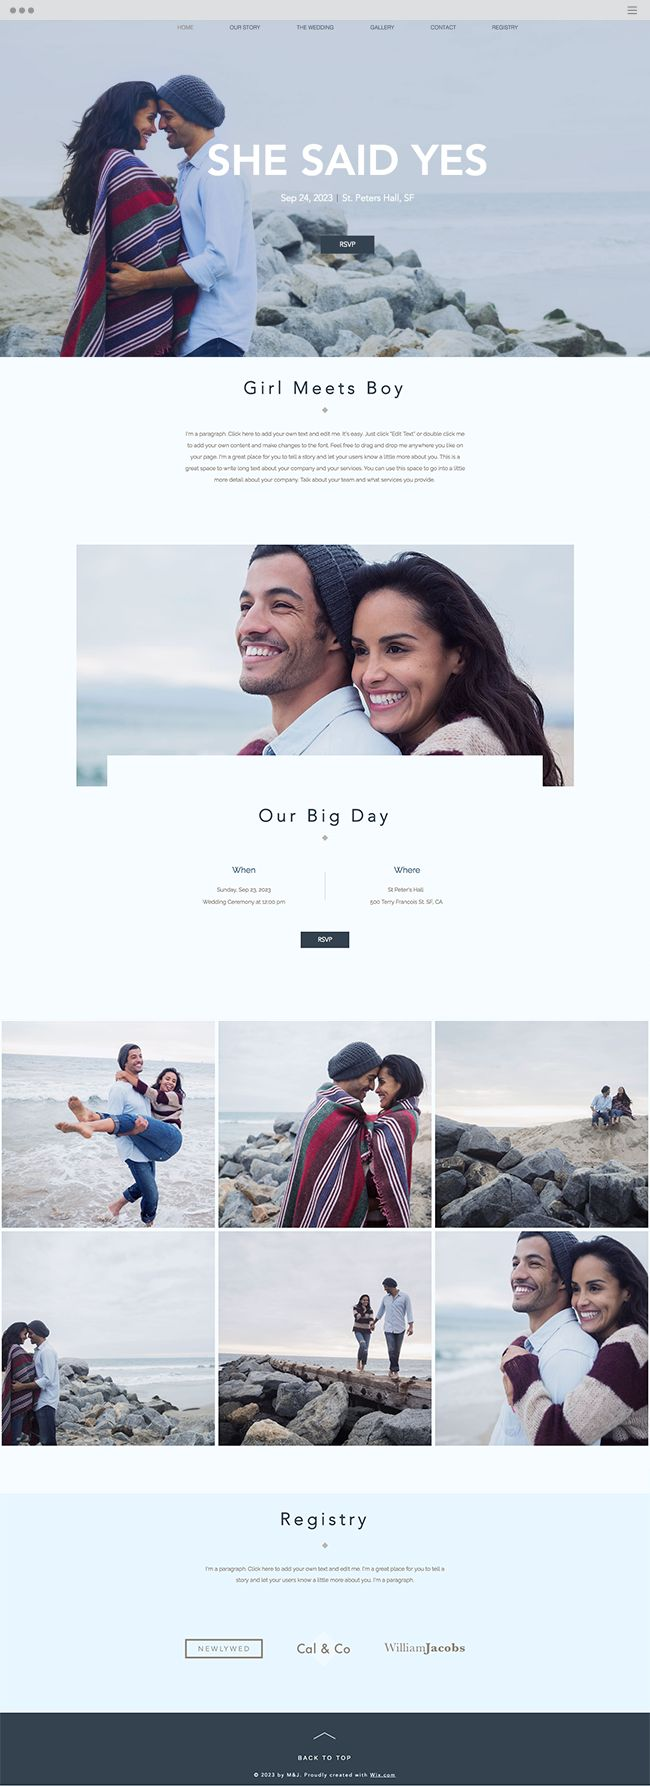 best images about wix website templates editor create your website wix website builder the easiest way to build and design a website create your own website and go live today